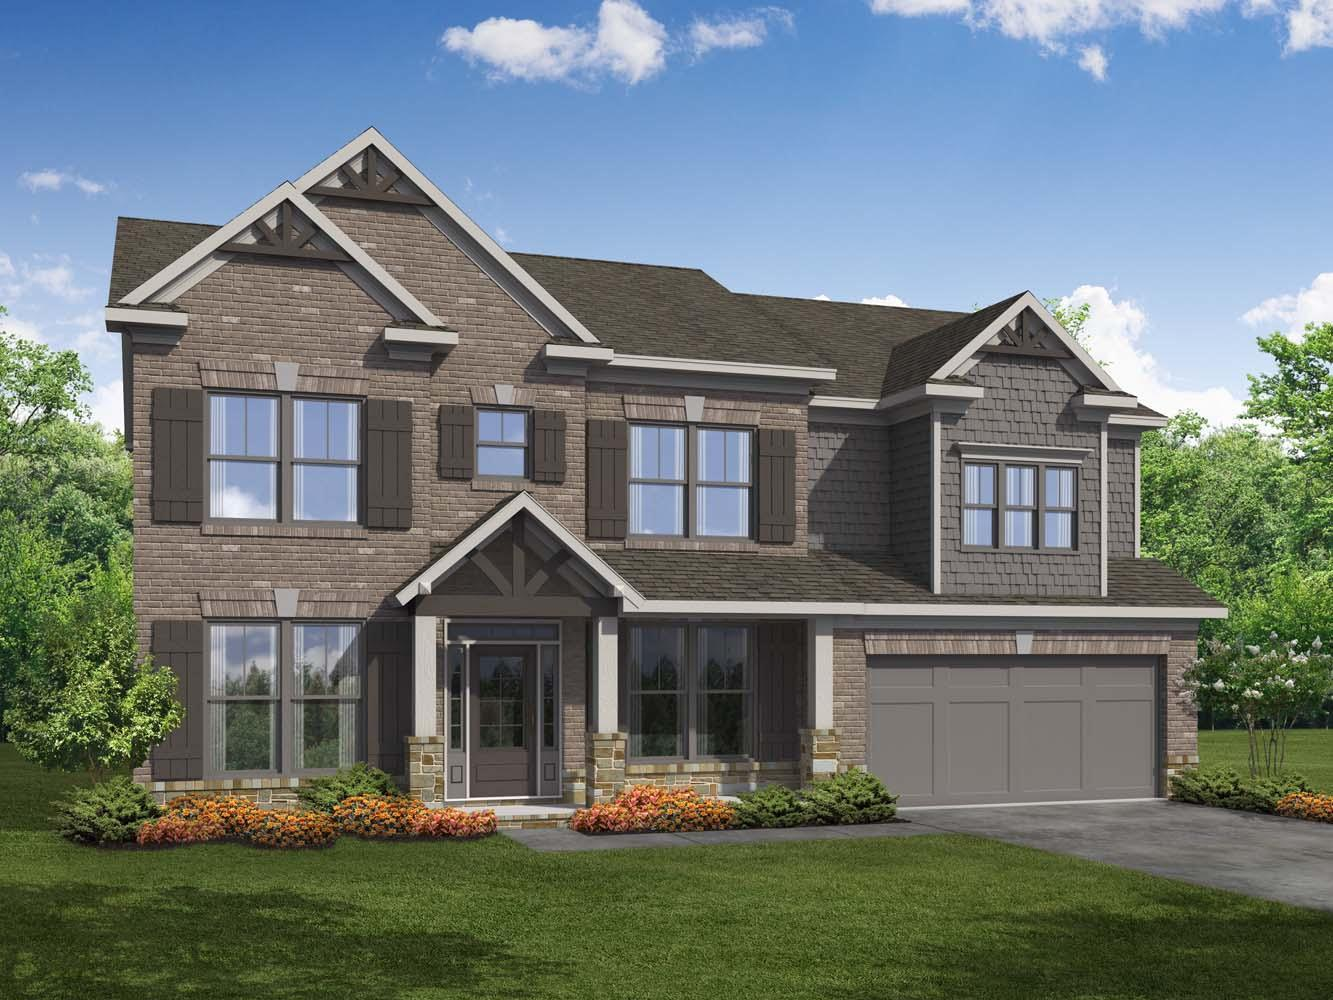 The Windermere by Chafin Communities